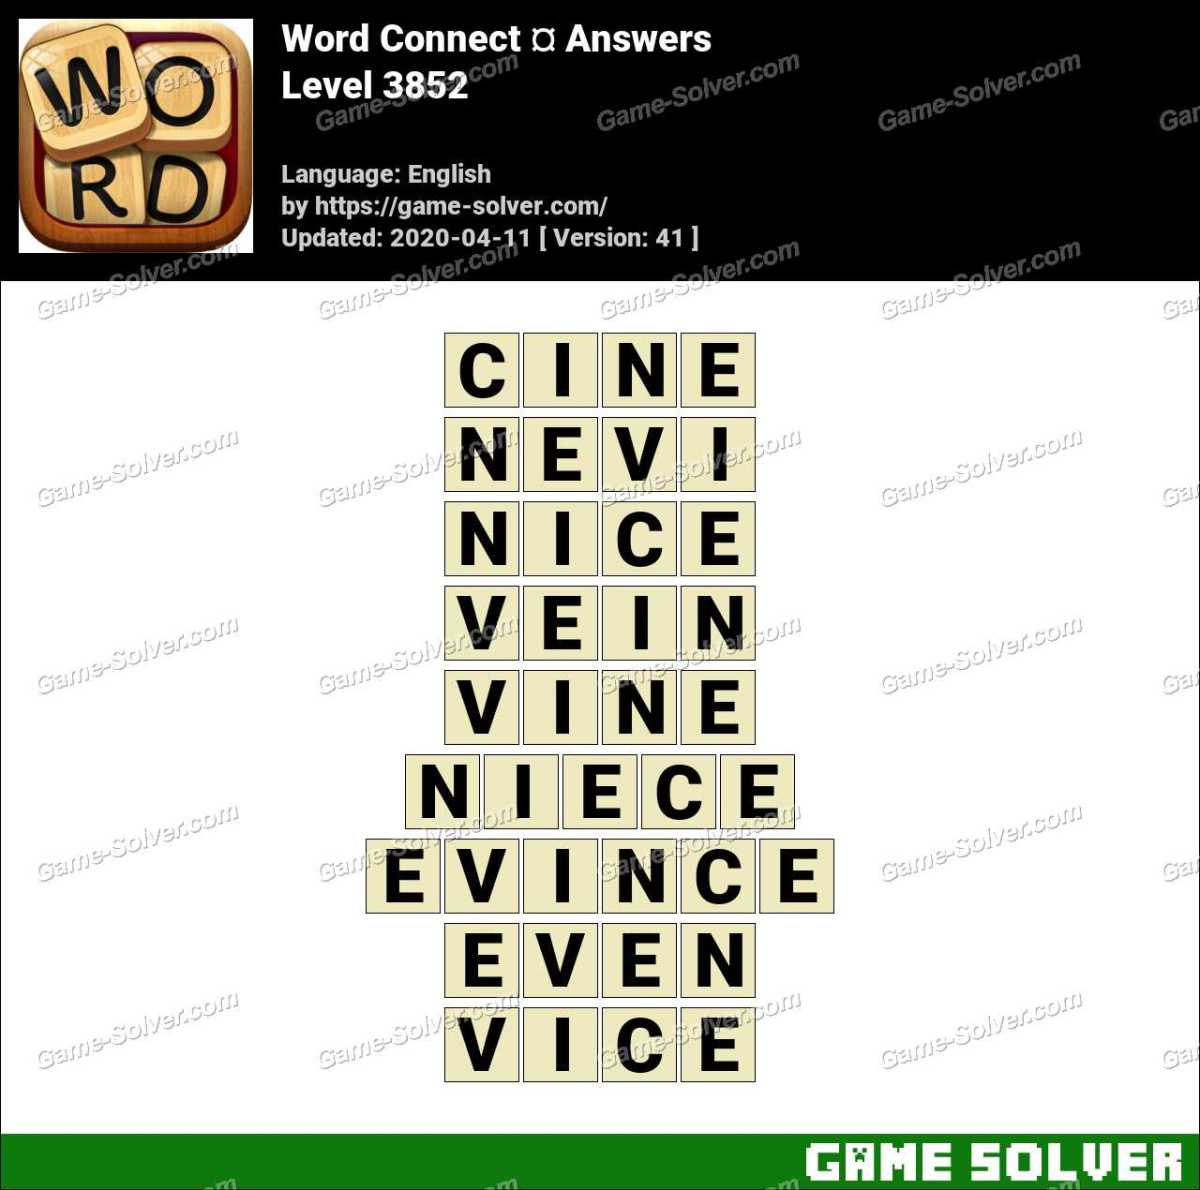 Word Connect Level 3852 Answers